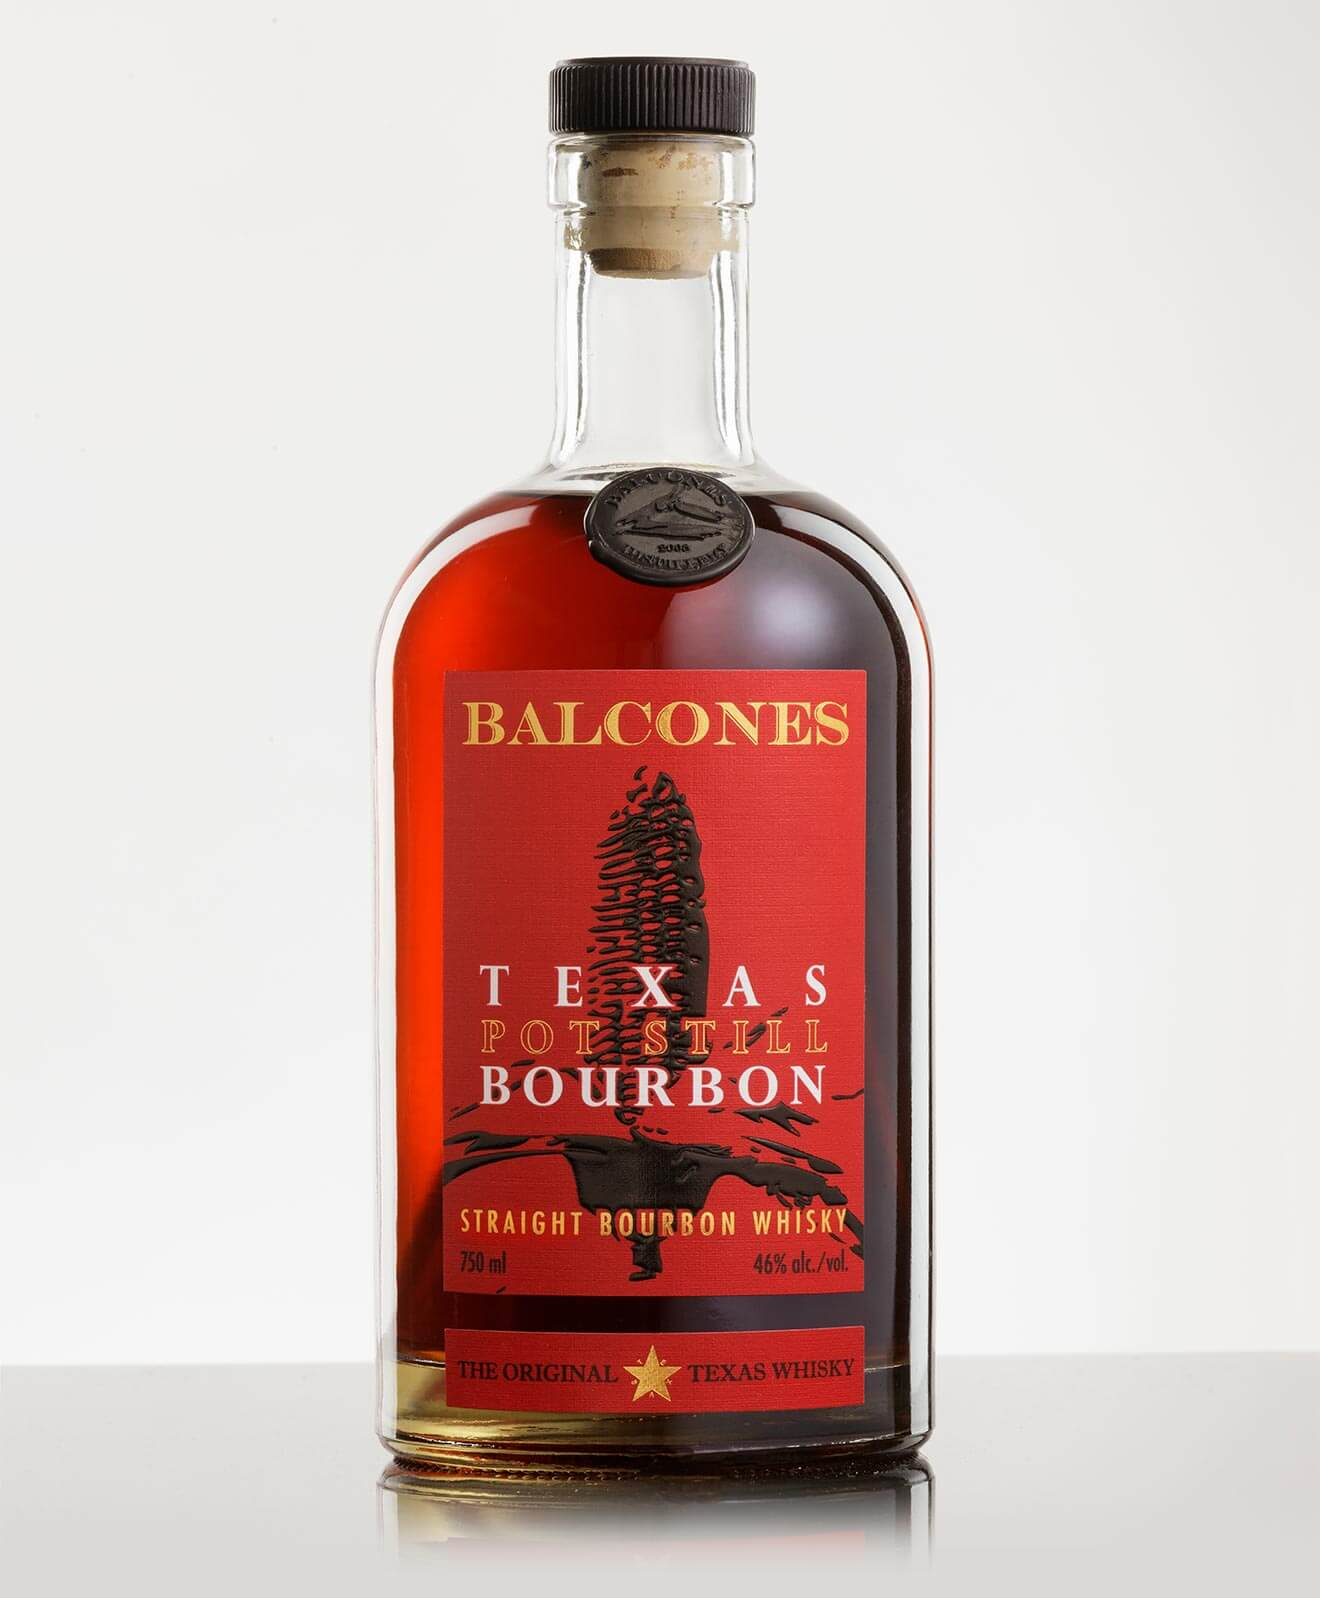 Balcones Distilling Texas Pot Still Bourbon, bottle with reflection on light back